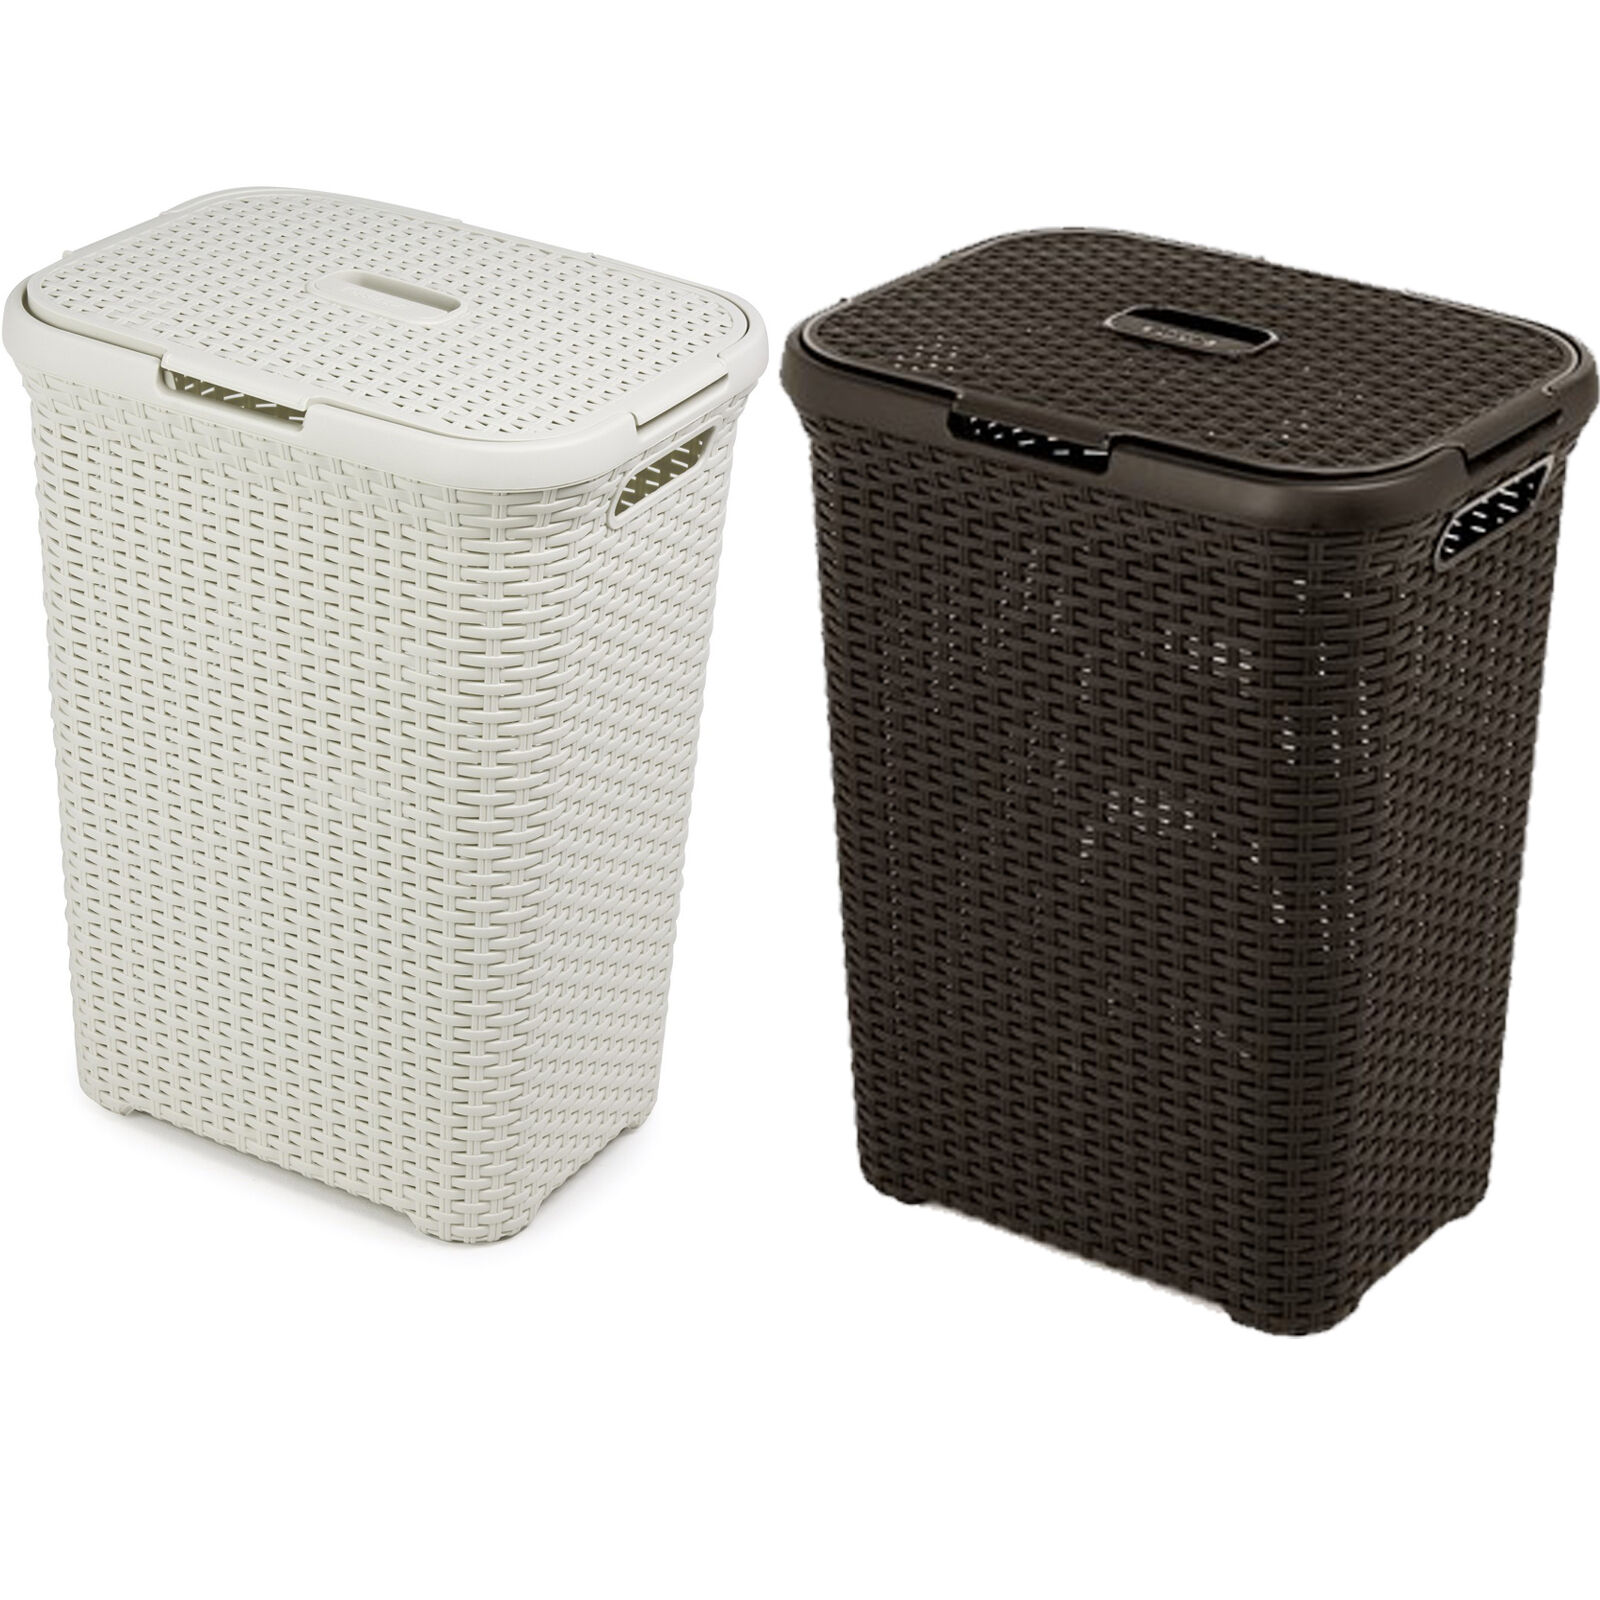 Designer Laundry Hamper Rattan Design Laundry Bin Washing Basket Bucket Hamper